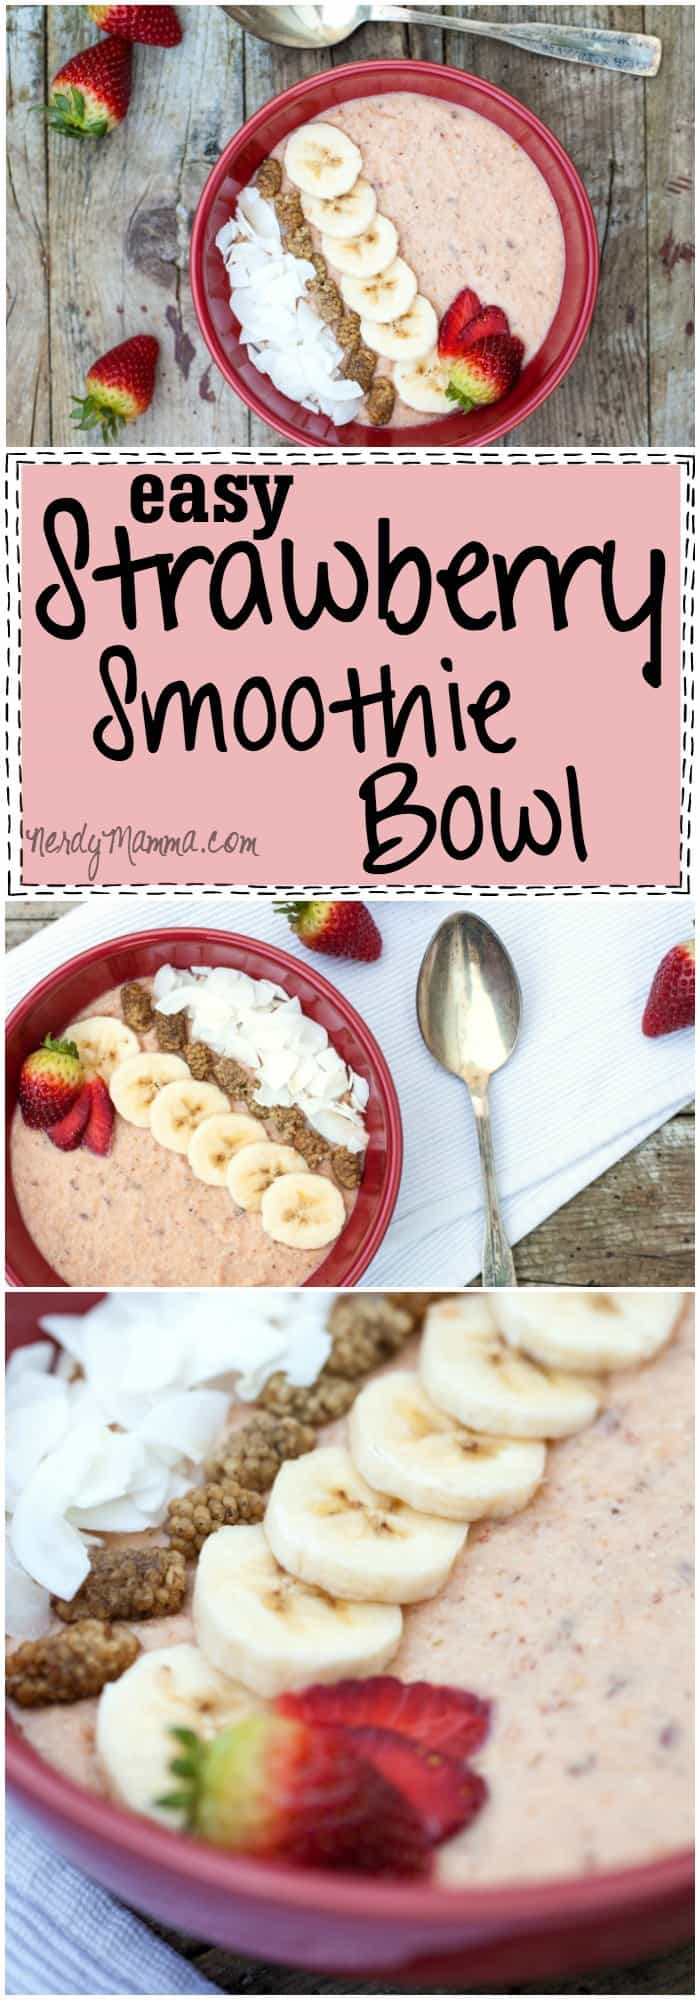 I love how easy this strawberry smoothie bowl sounds! I can't wait to try it!